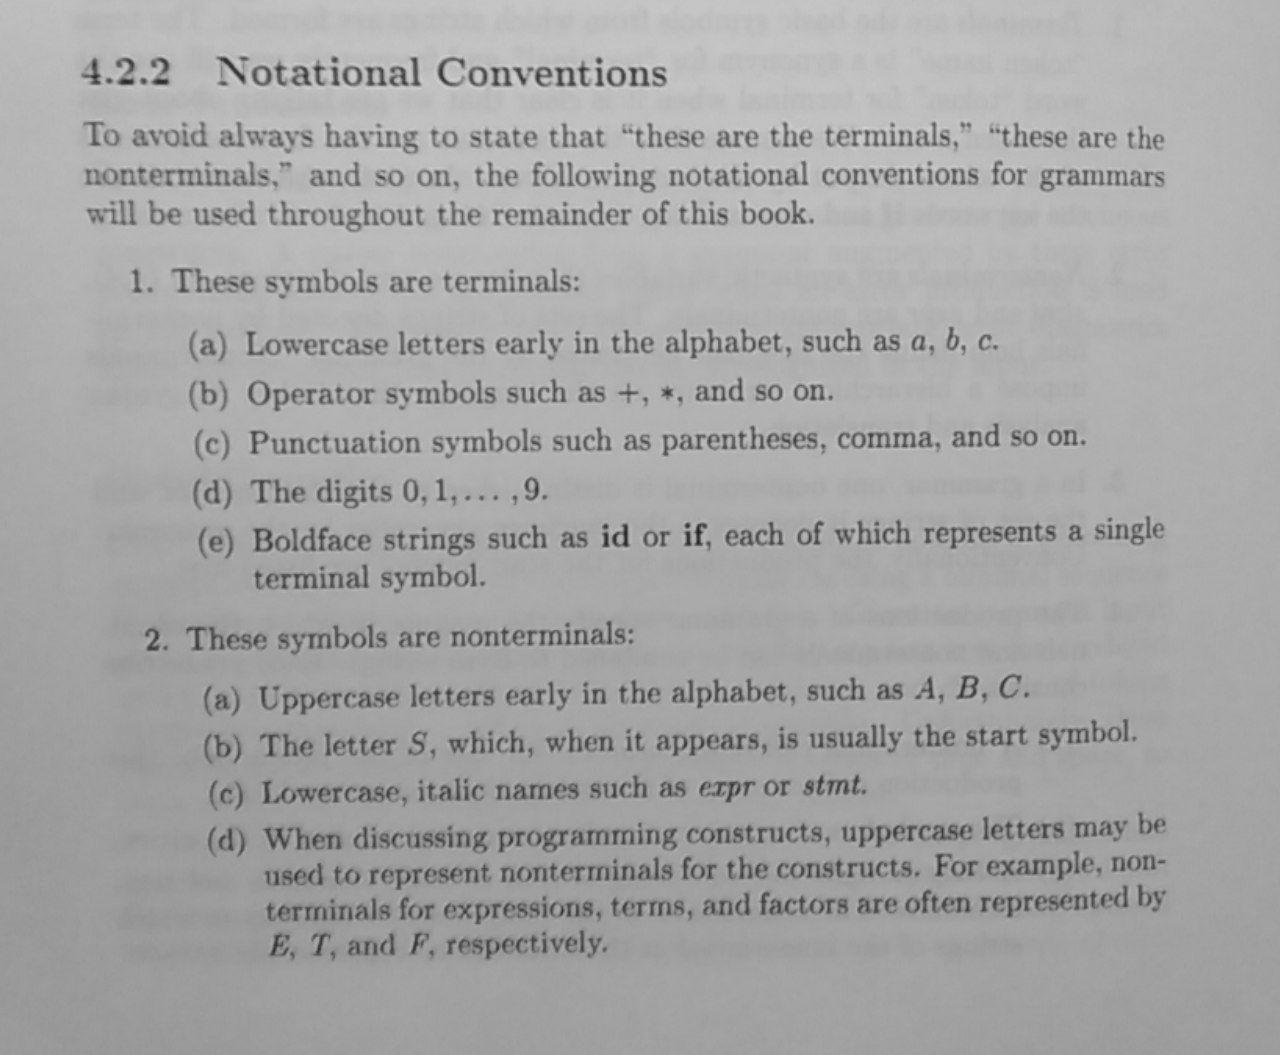 Notational convention 1